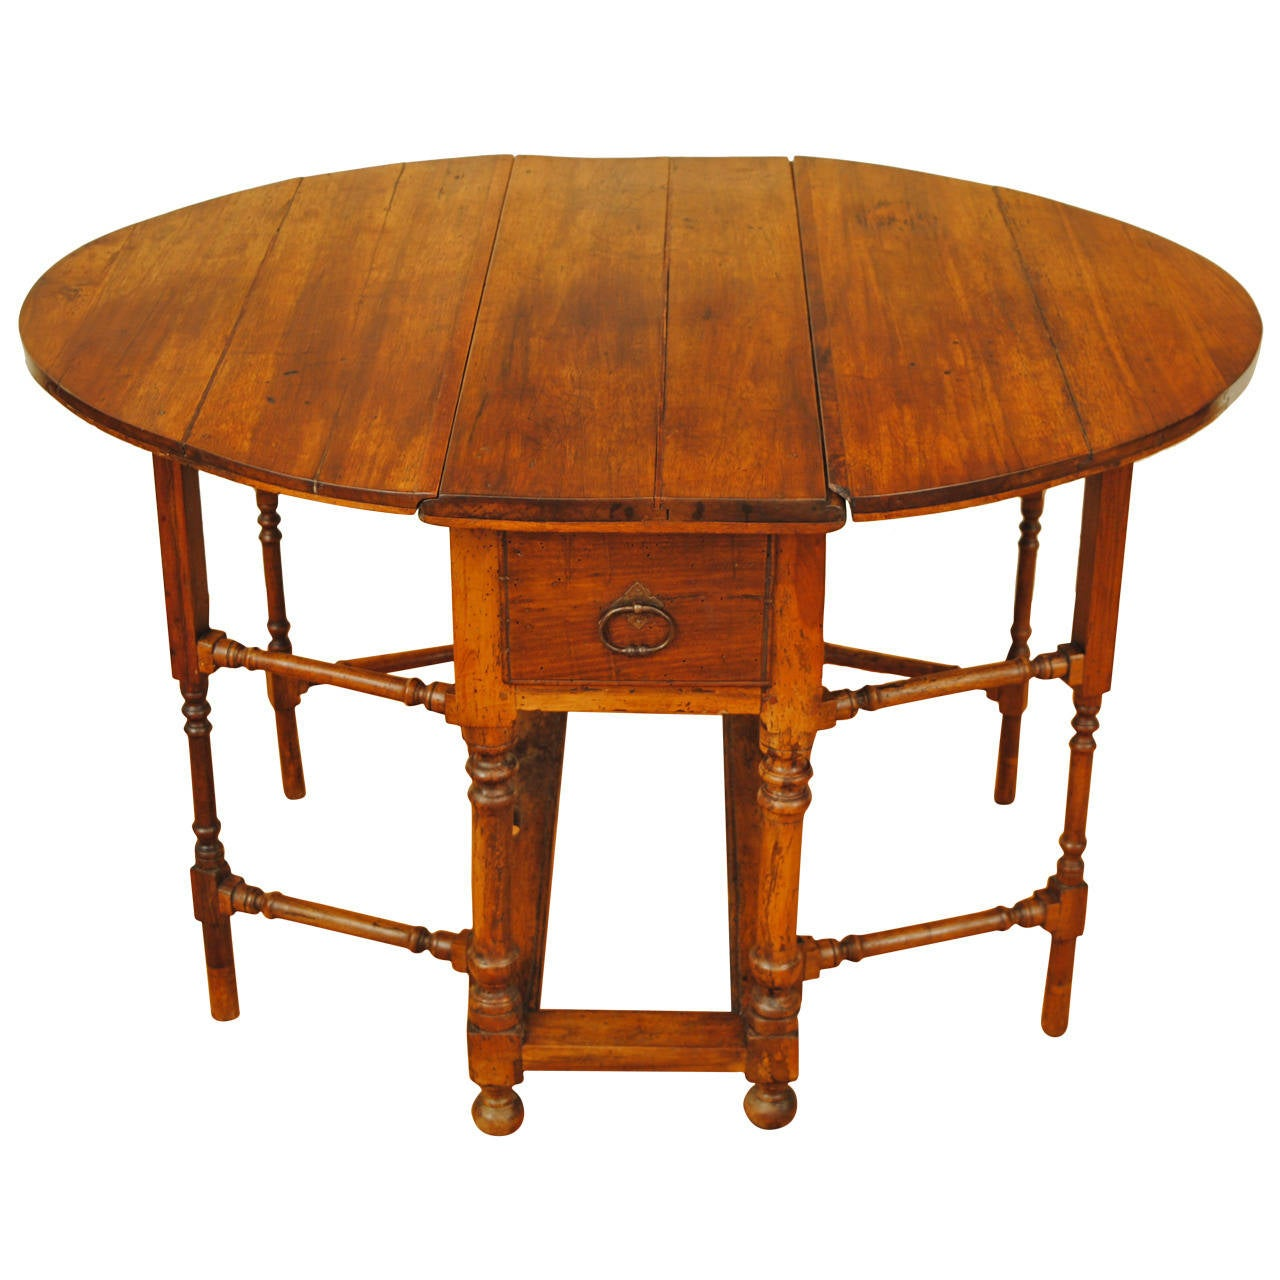 Italian Early 18th Century Light Walnut Drop Leaf Table